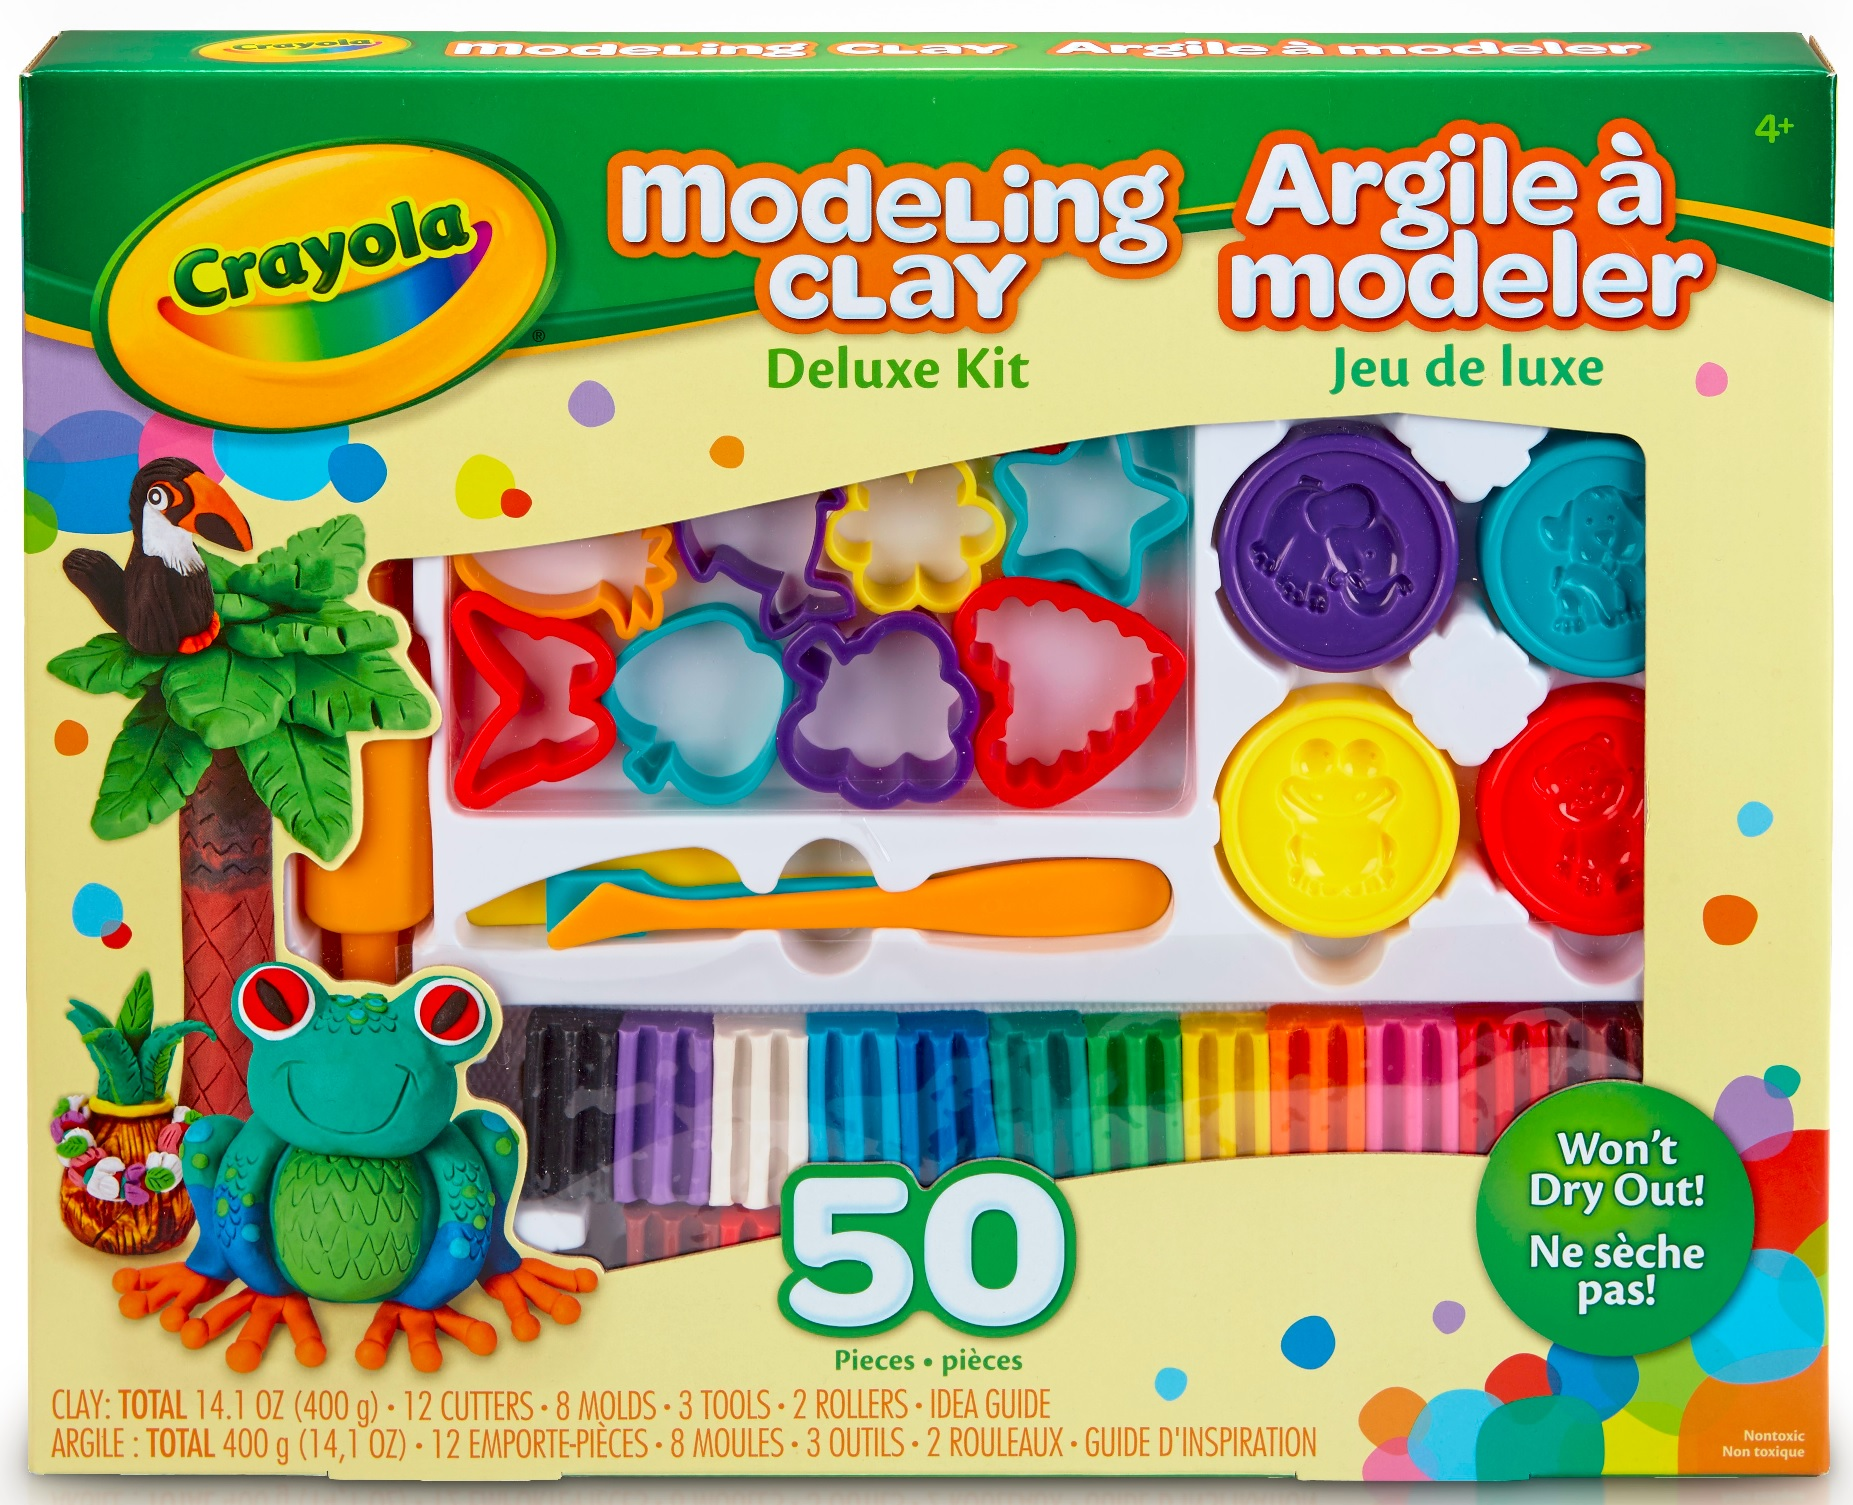 Crayola Modeling Clay Deluxe Kit 4+, 50 count by Crayola